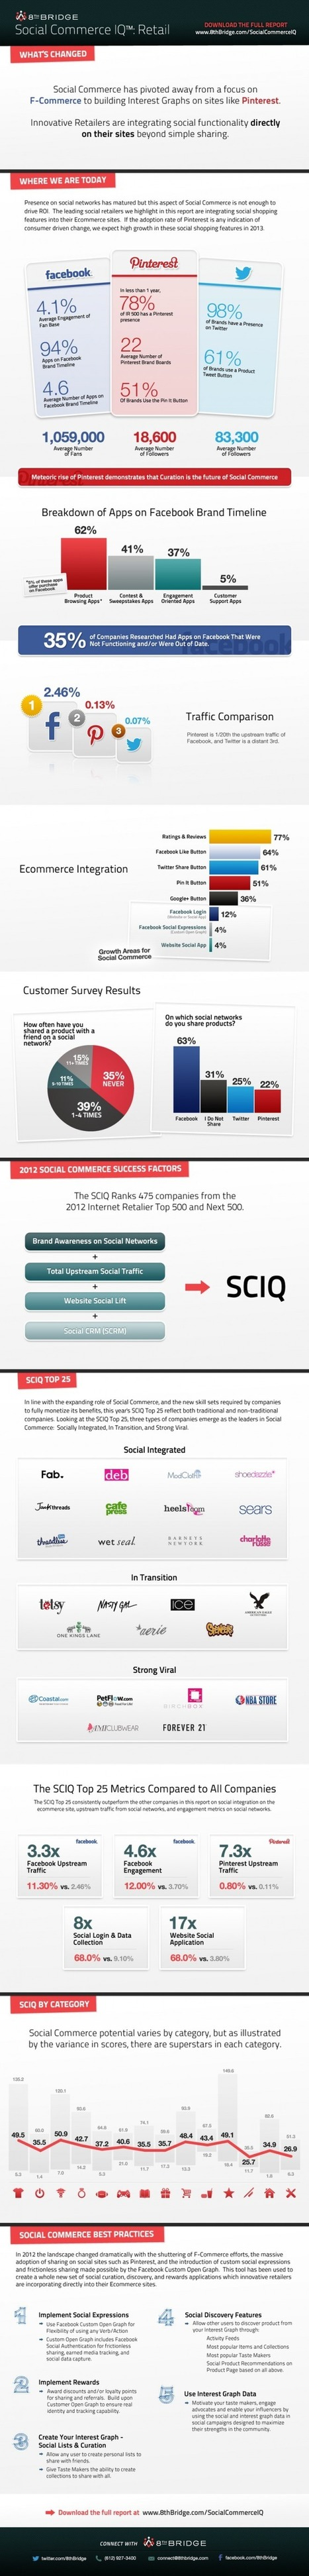 Le QI social du retail US [EN] | Commerce digital | Scoop.it